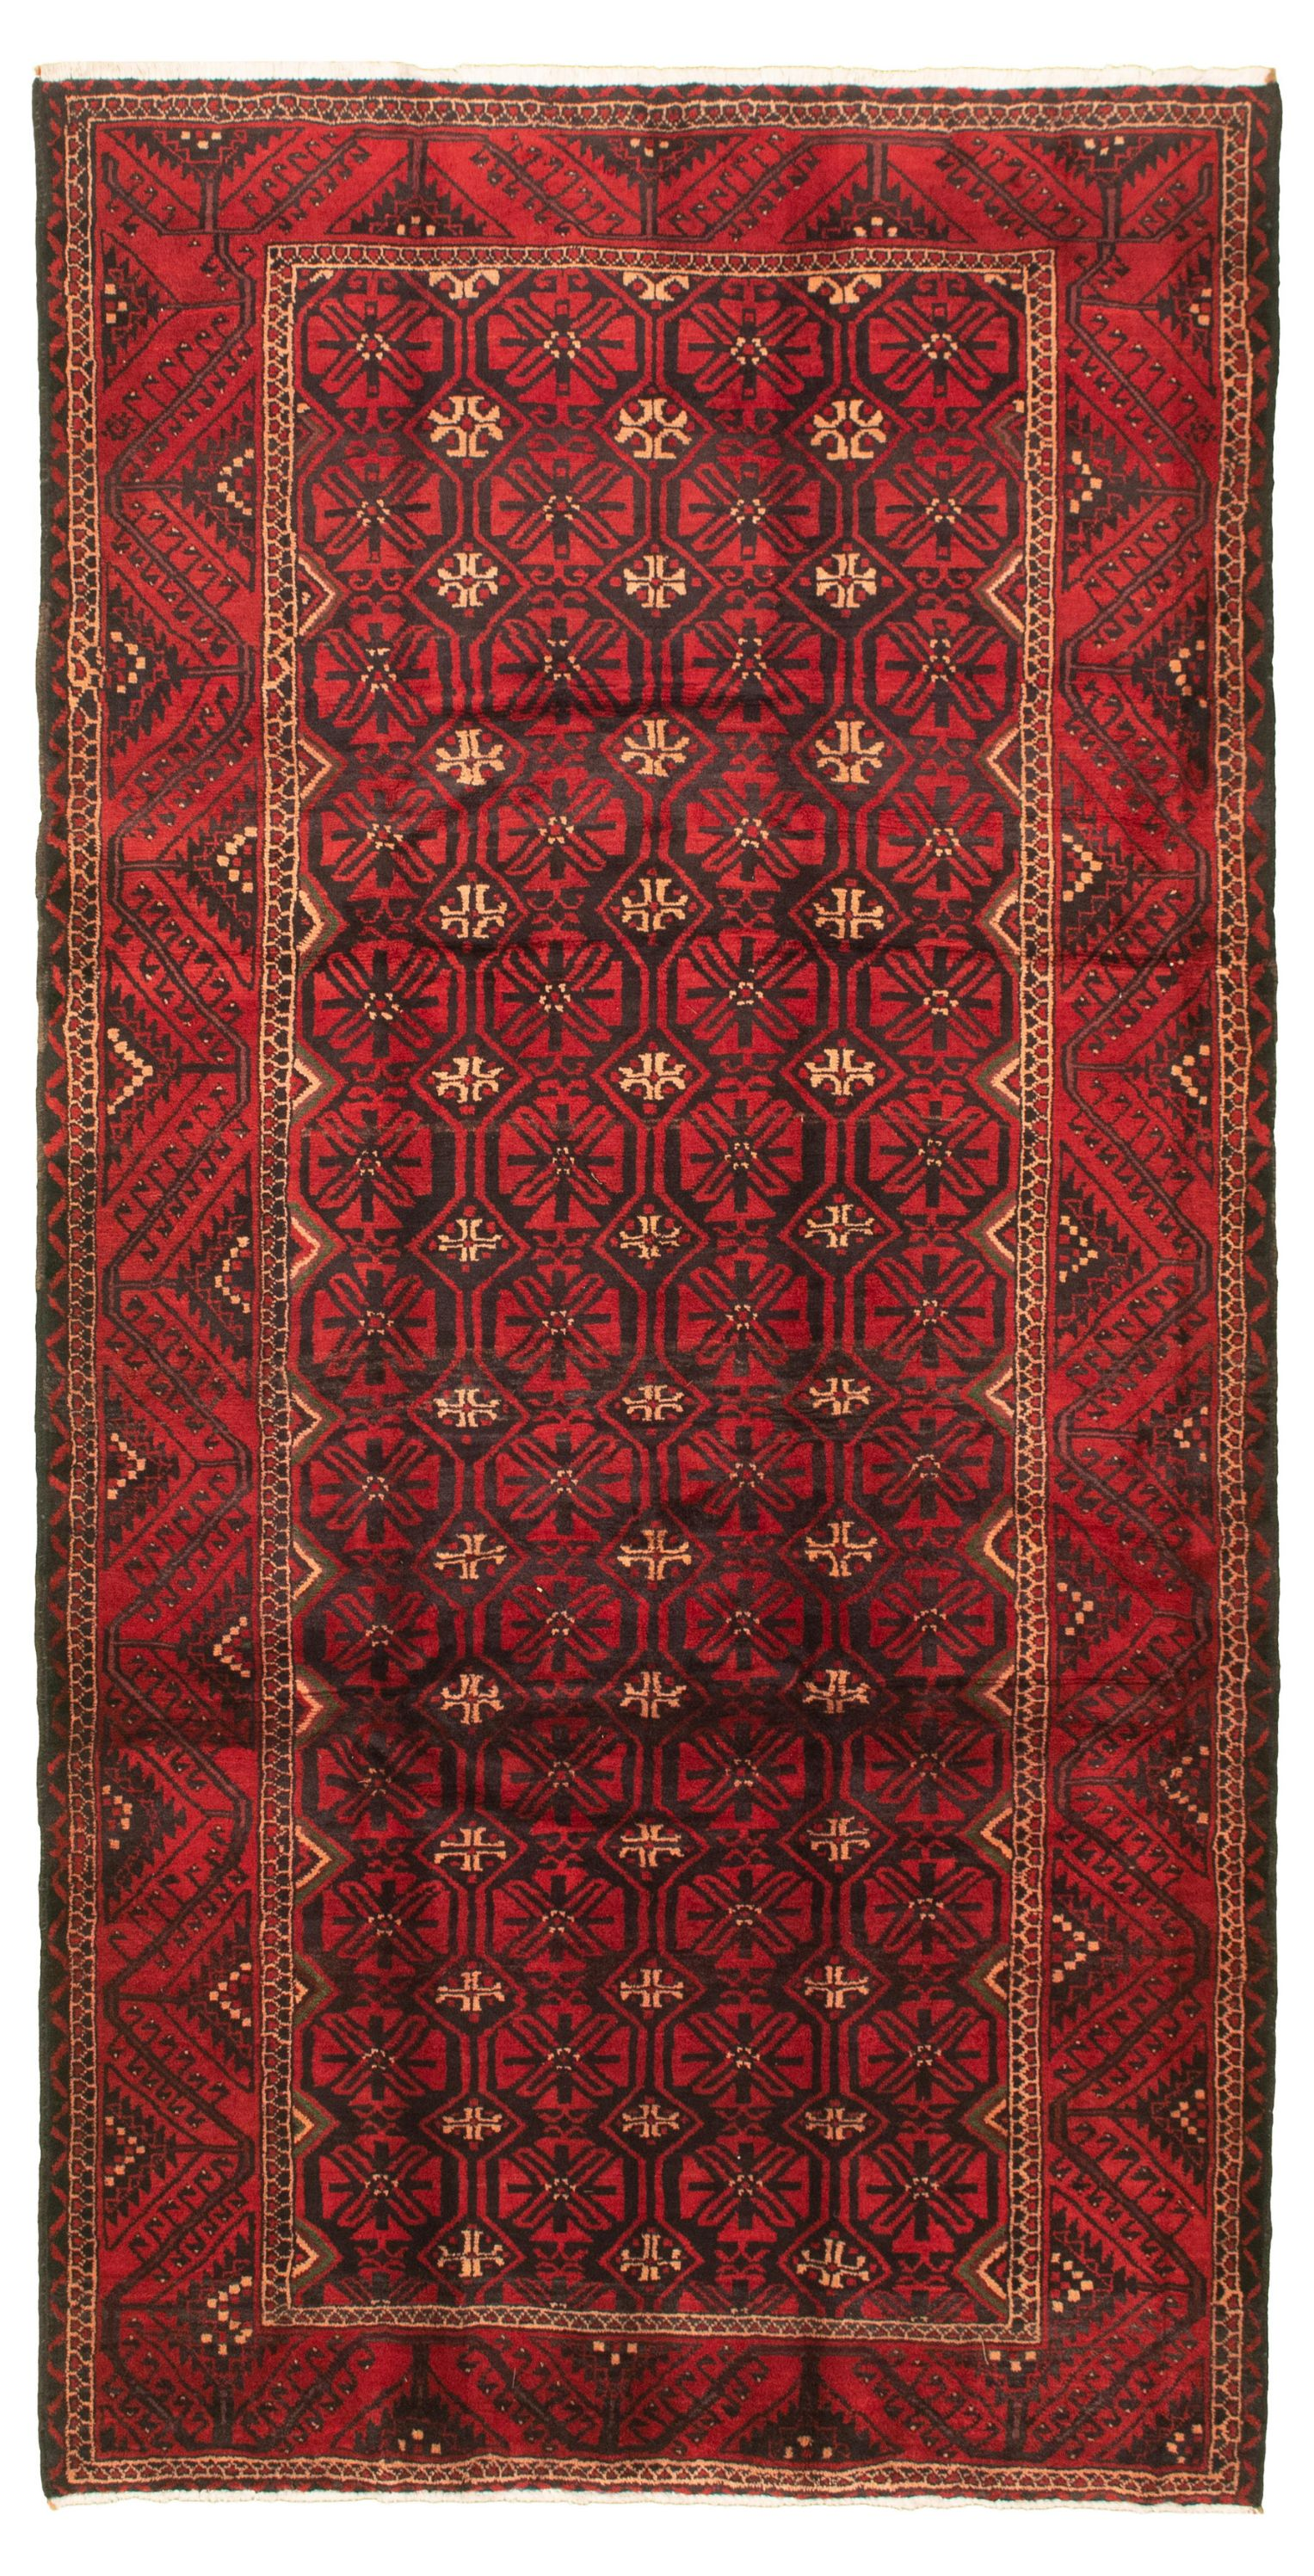 """Hand-knotted Authentic Turkish Red Wool Rug 5'1"""" x 9'8"""" Size: 5'1"""" x 9'8"""""""